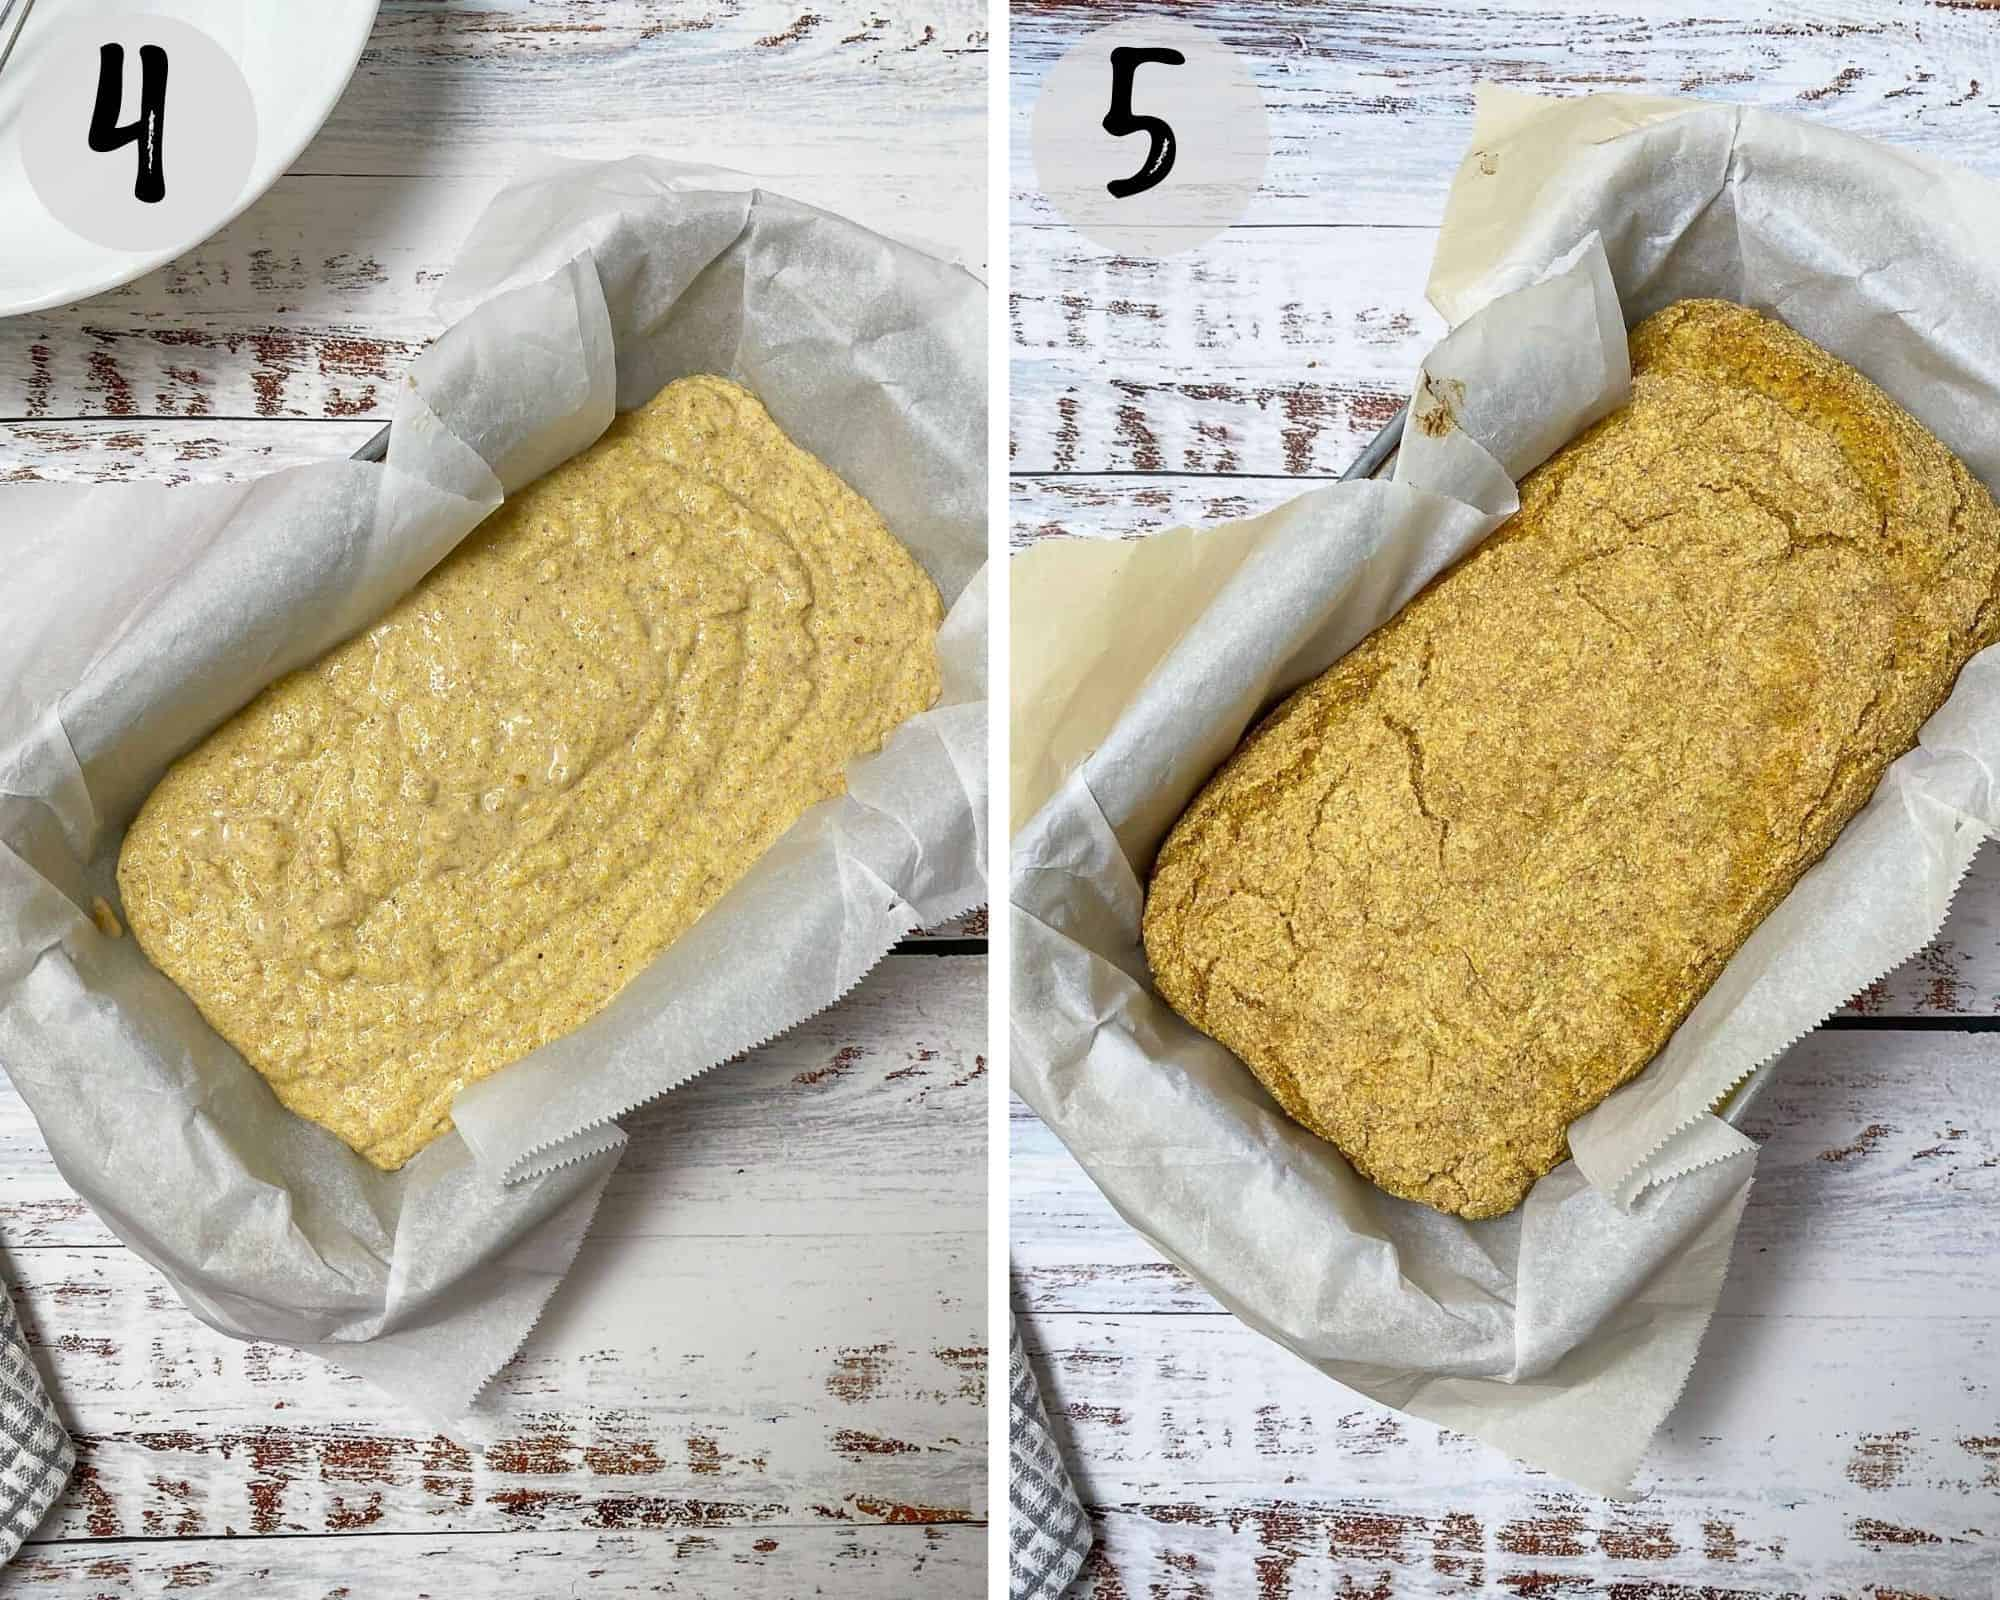 cornbread batter in loaf pan before and after baking